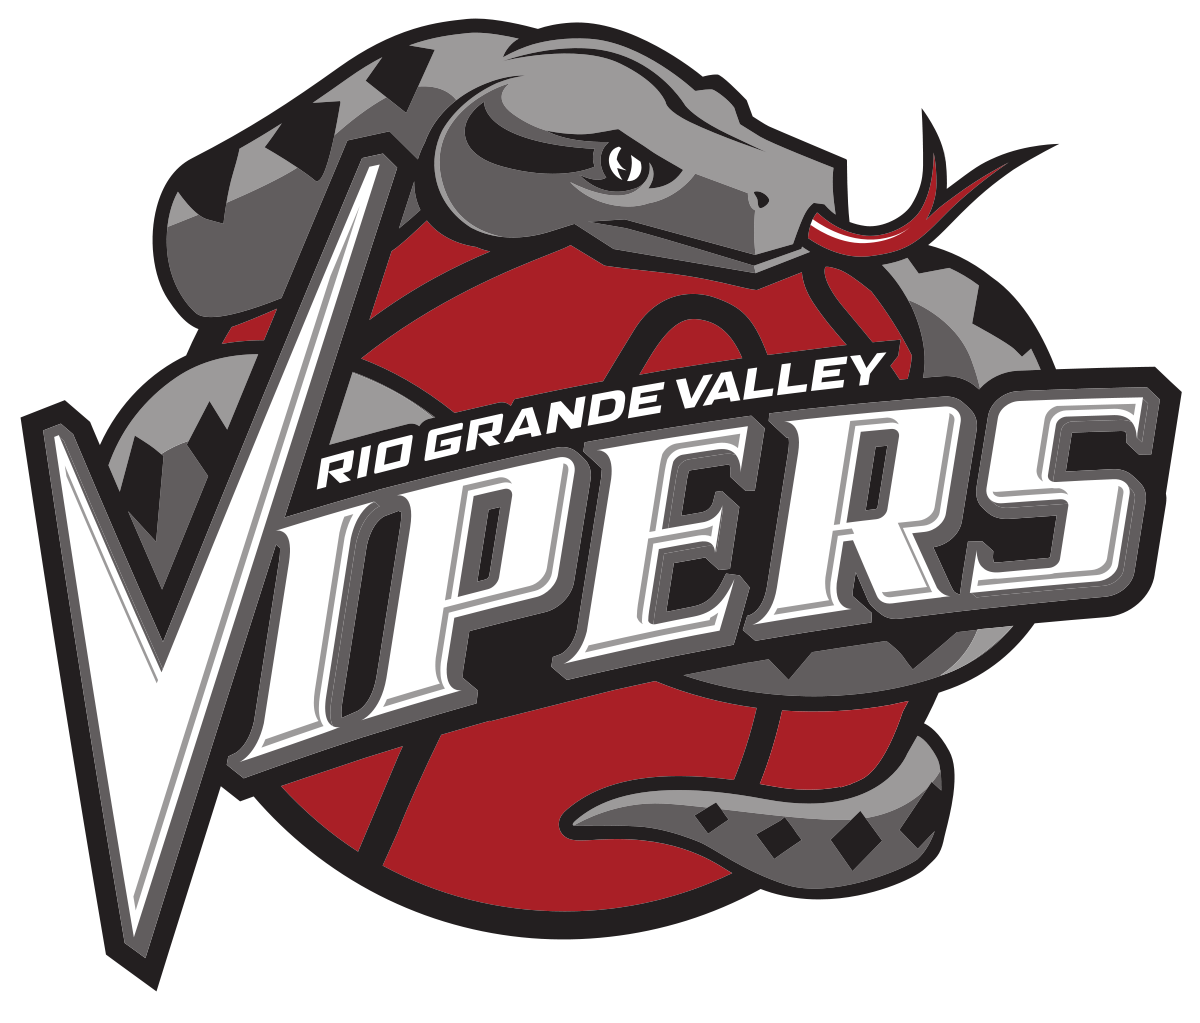 Animals playing basketball clipart banner royalty free download Rio Grande Valley Vipers - Wikipedia banner royalty free download